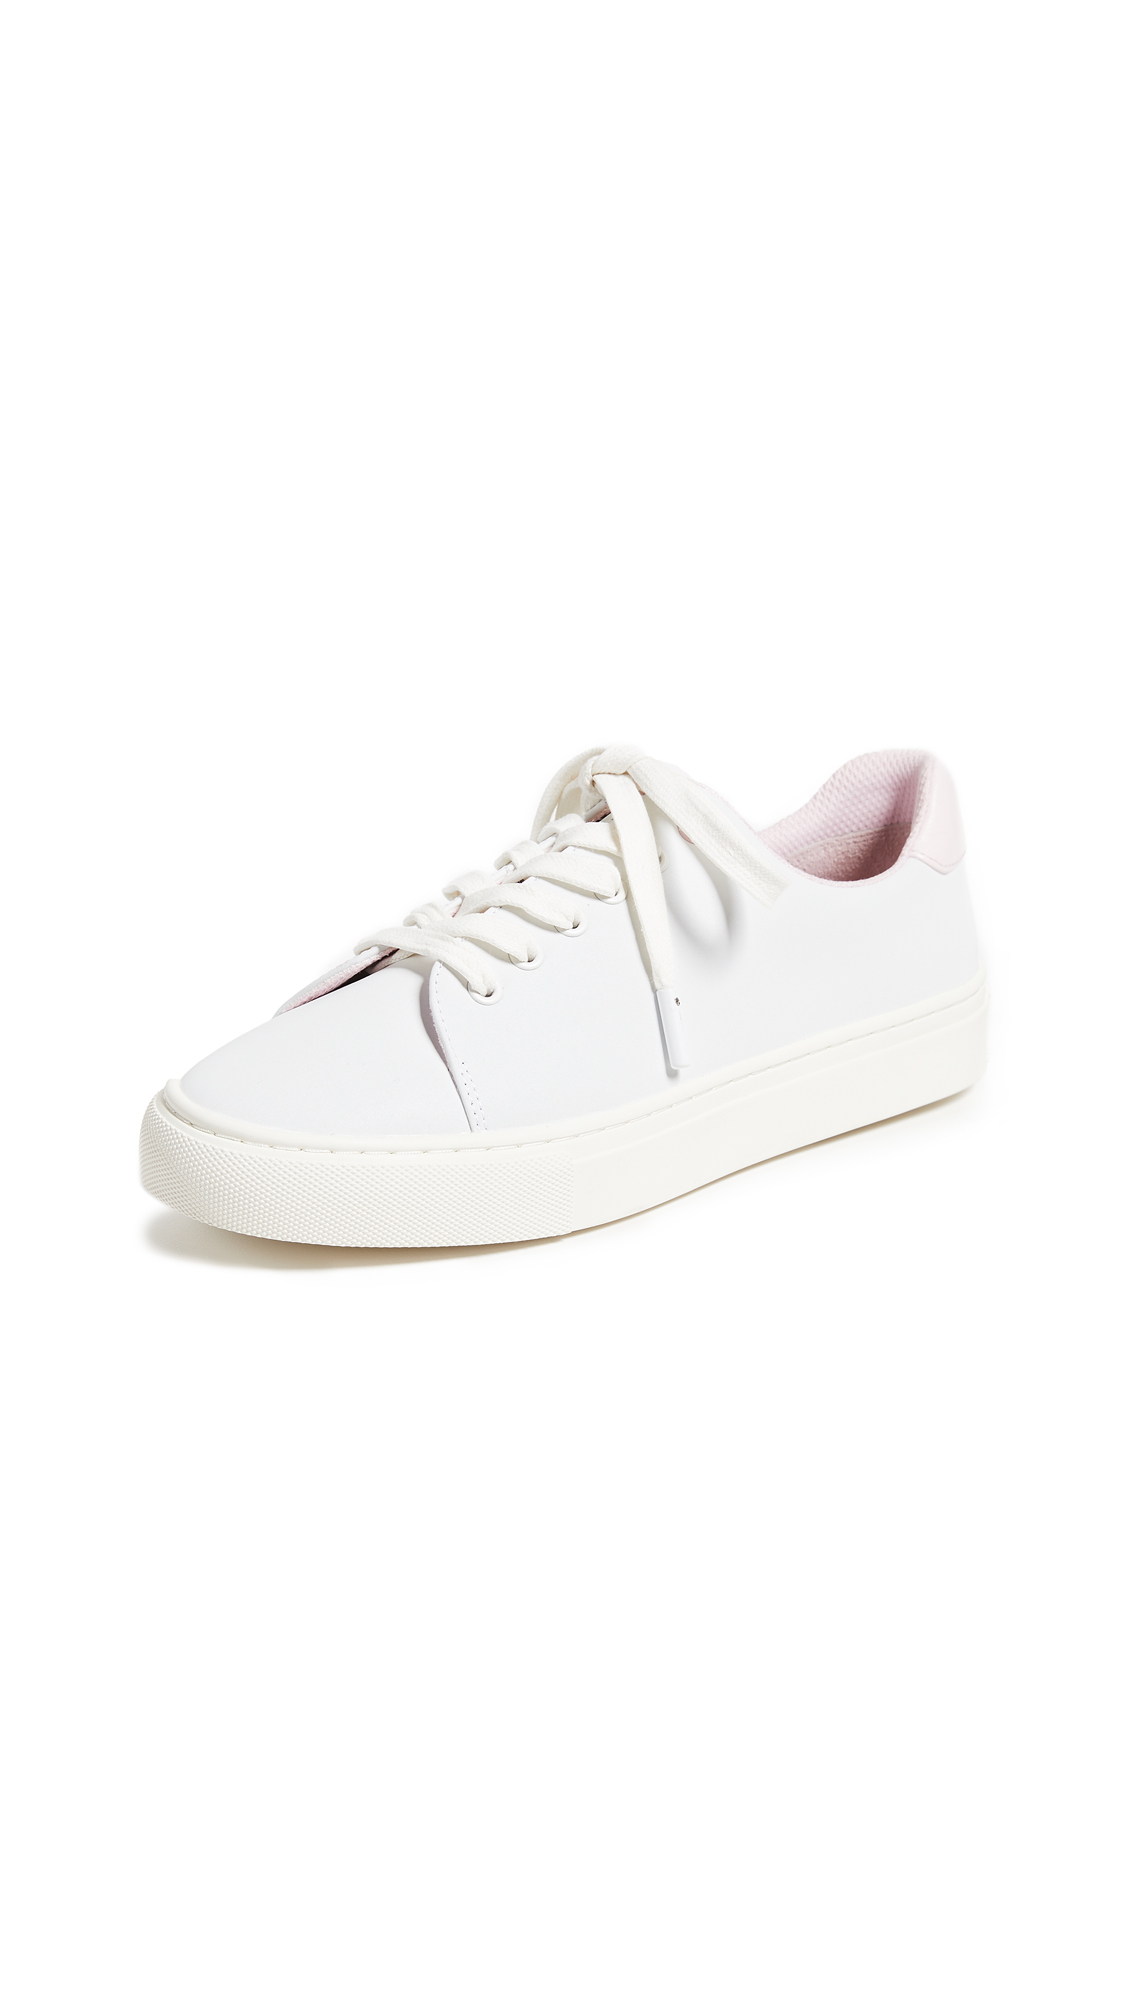 Tory Sport Reflective Sneakers - White/Cotton Pink